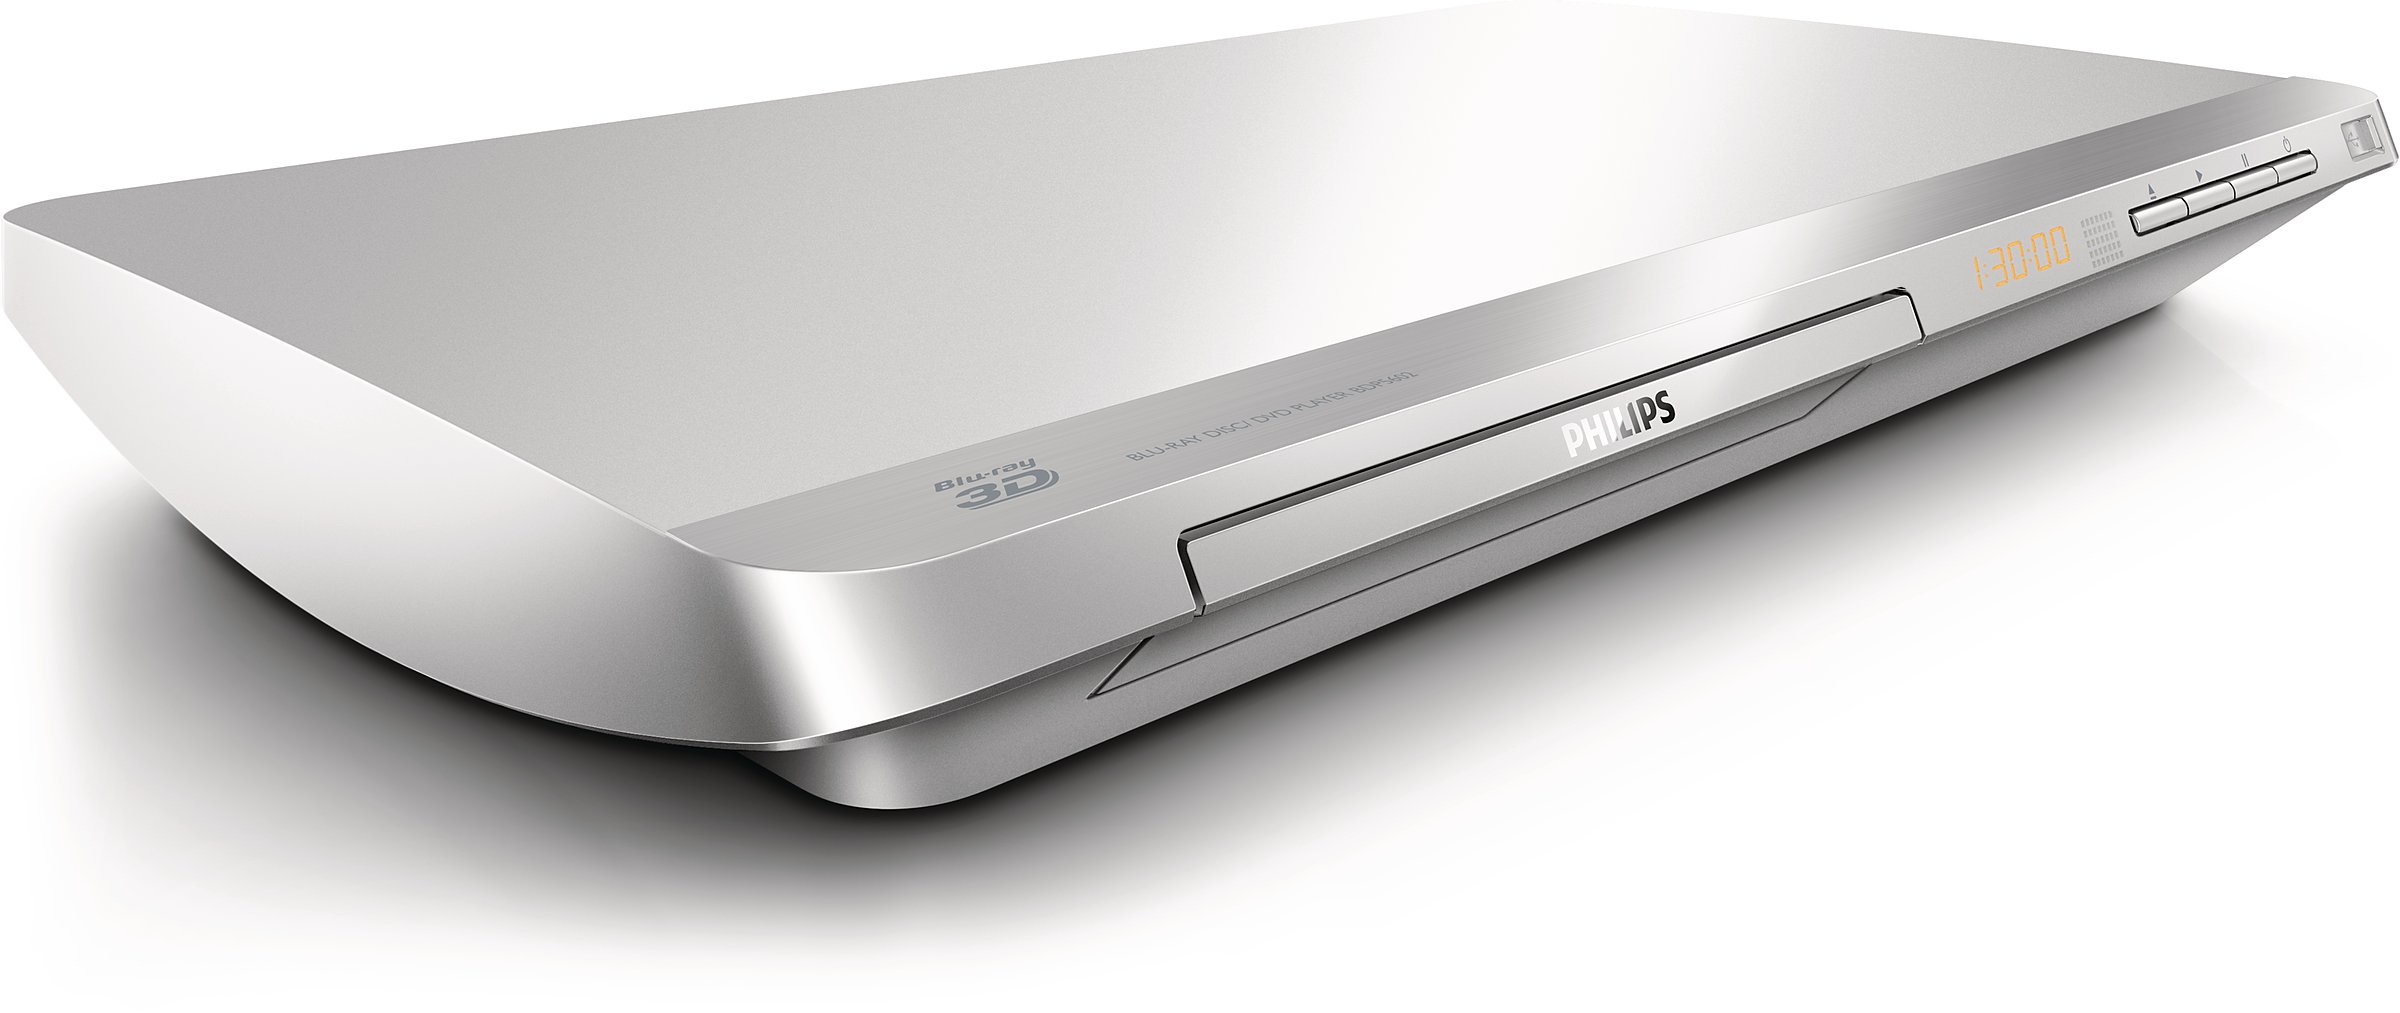 Philips 5000 Series Bdp5602 12 Dvd Blu Ray Player 3d Silver